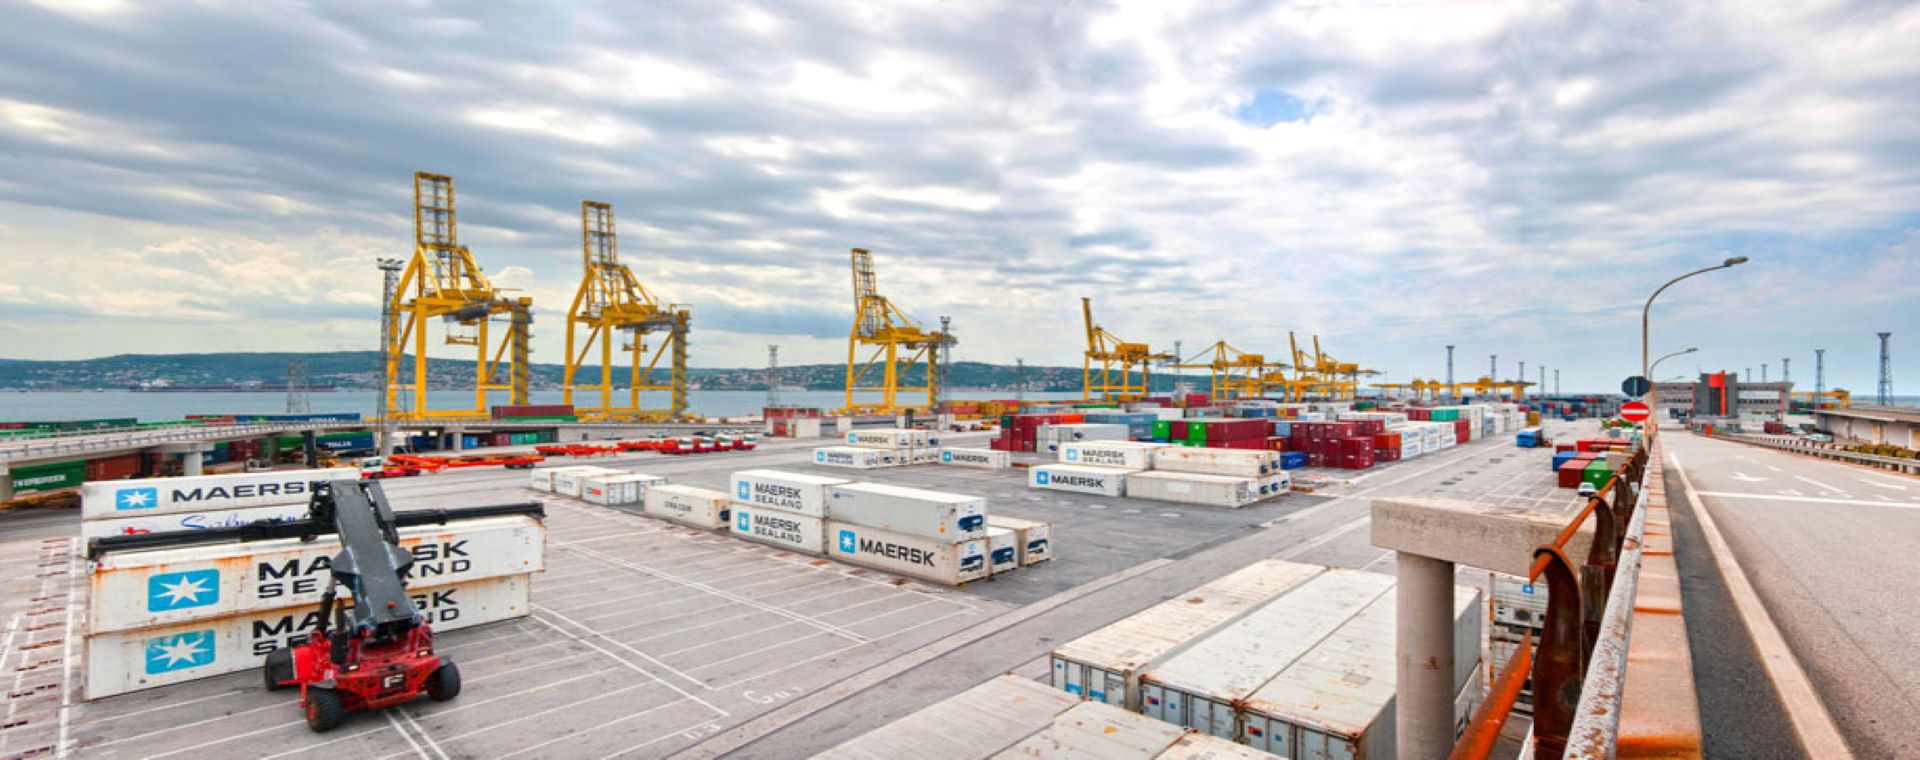 Smart ideas for sustainable and low-carbon ports